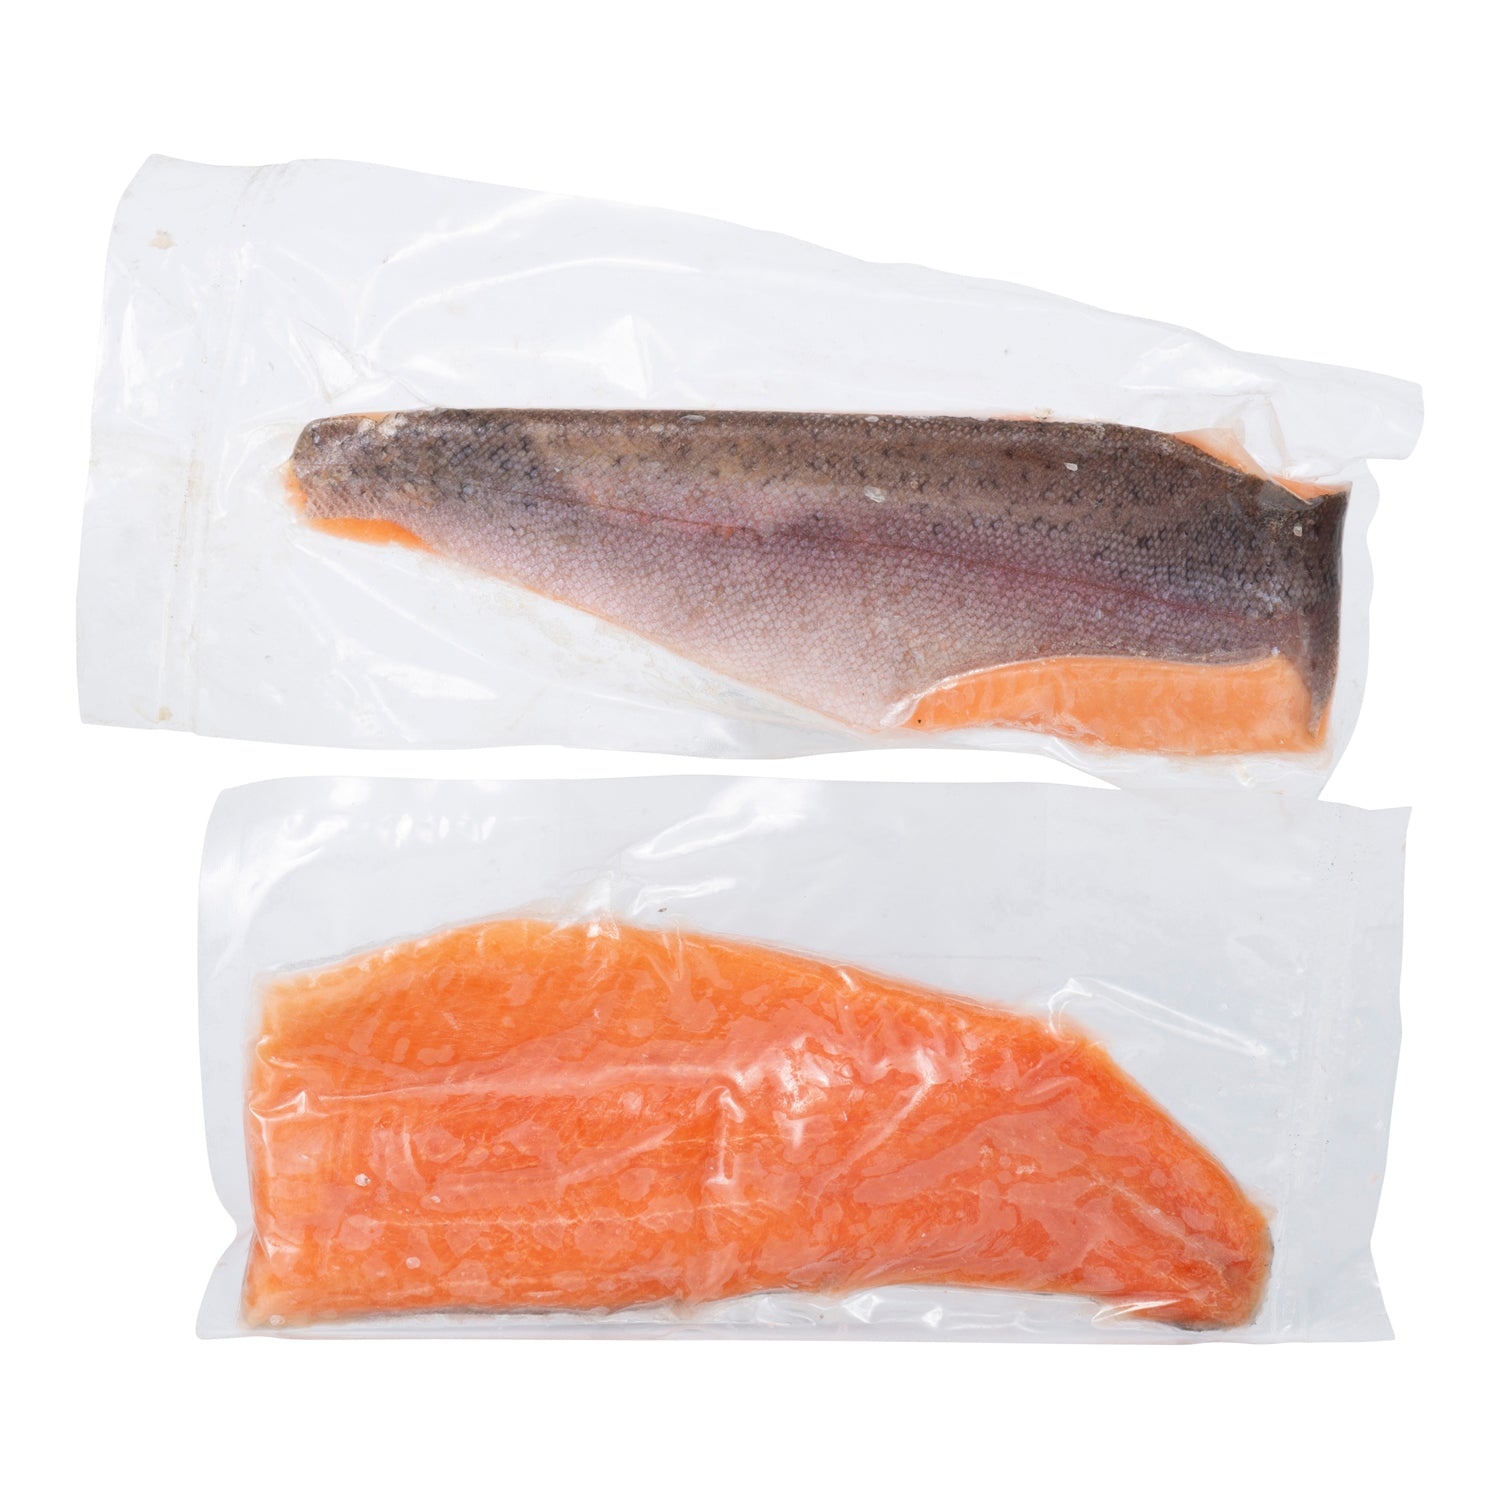 Ocean Jewel Frozen Rainbow Trout Fillets 5-6 oz Individual Portions 10 lb - 1 Pack [$10.30/lb]